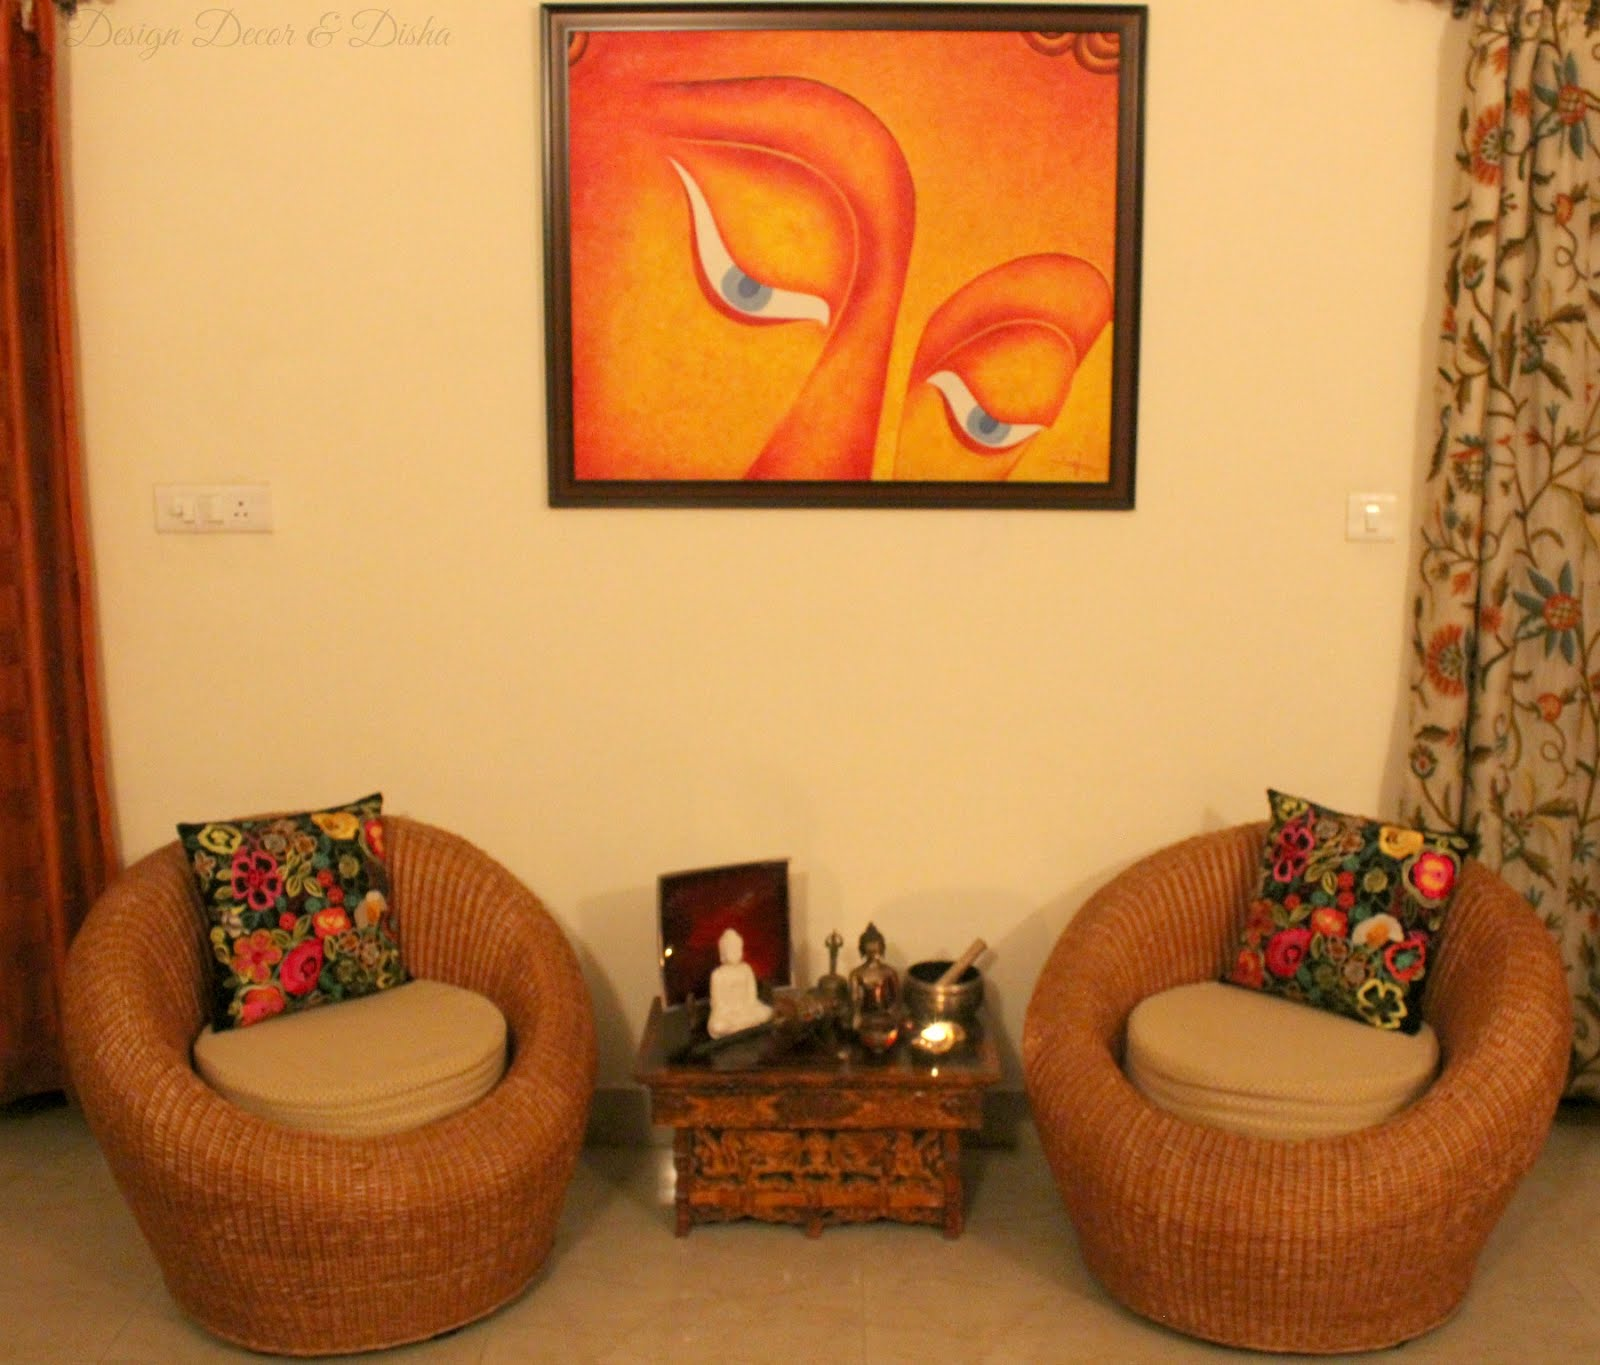 Design decor disha an indian design decor blog home for House decorating ideas